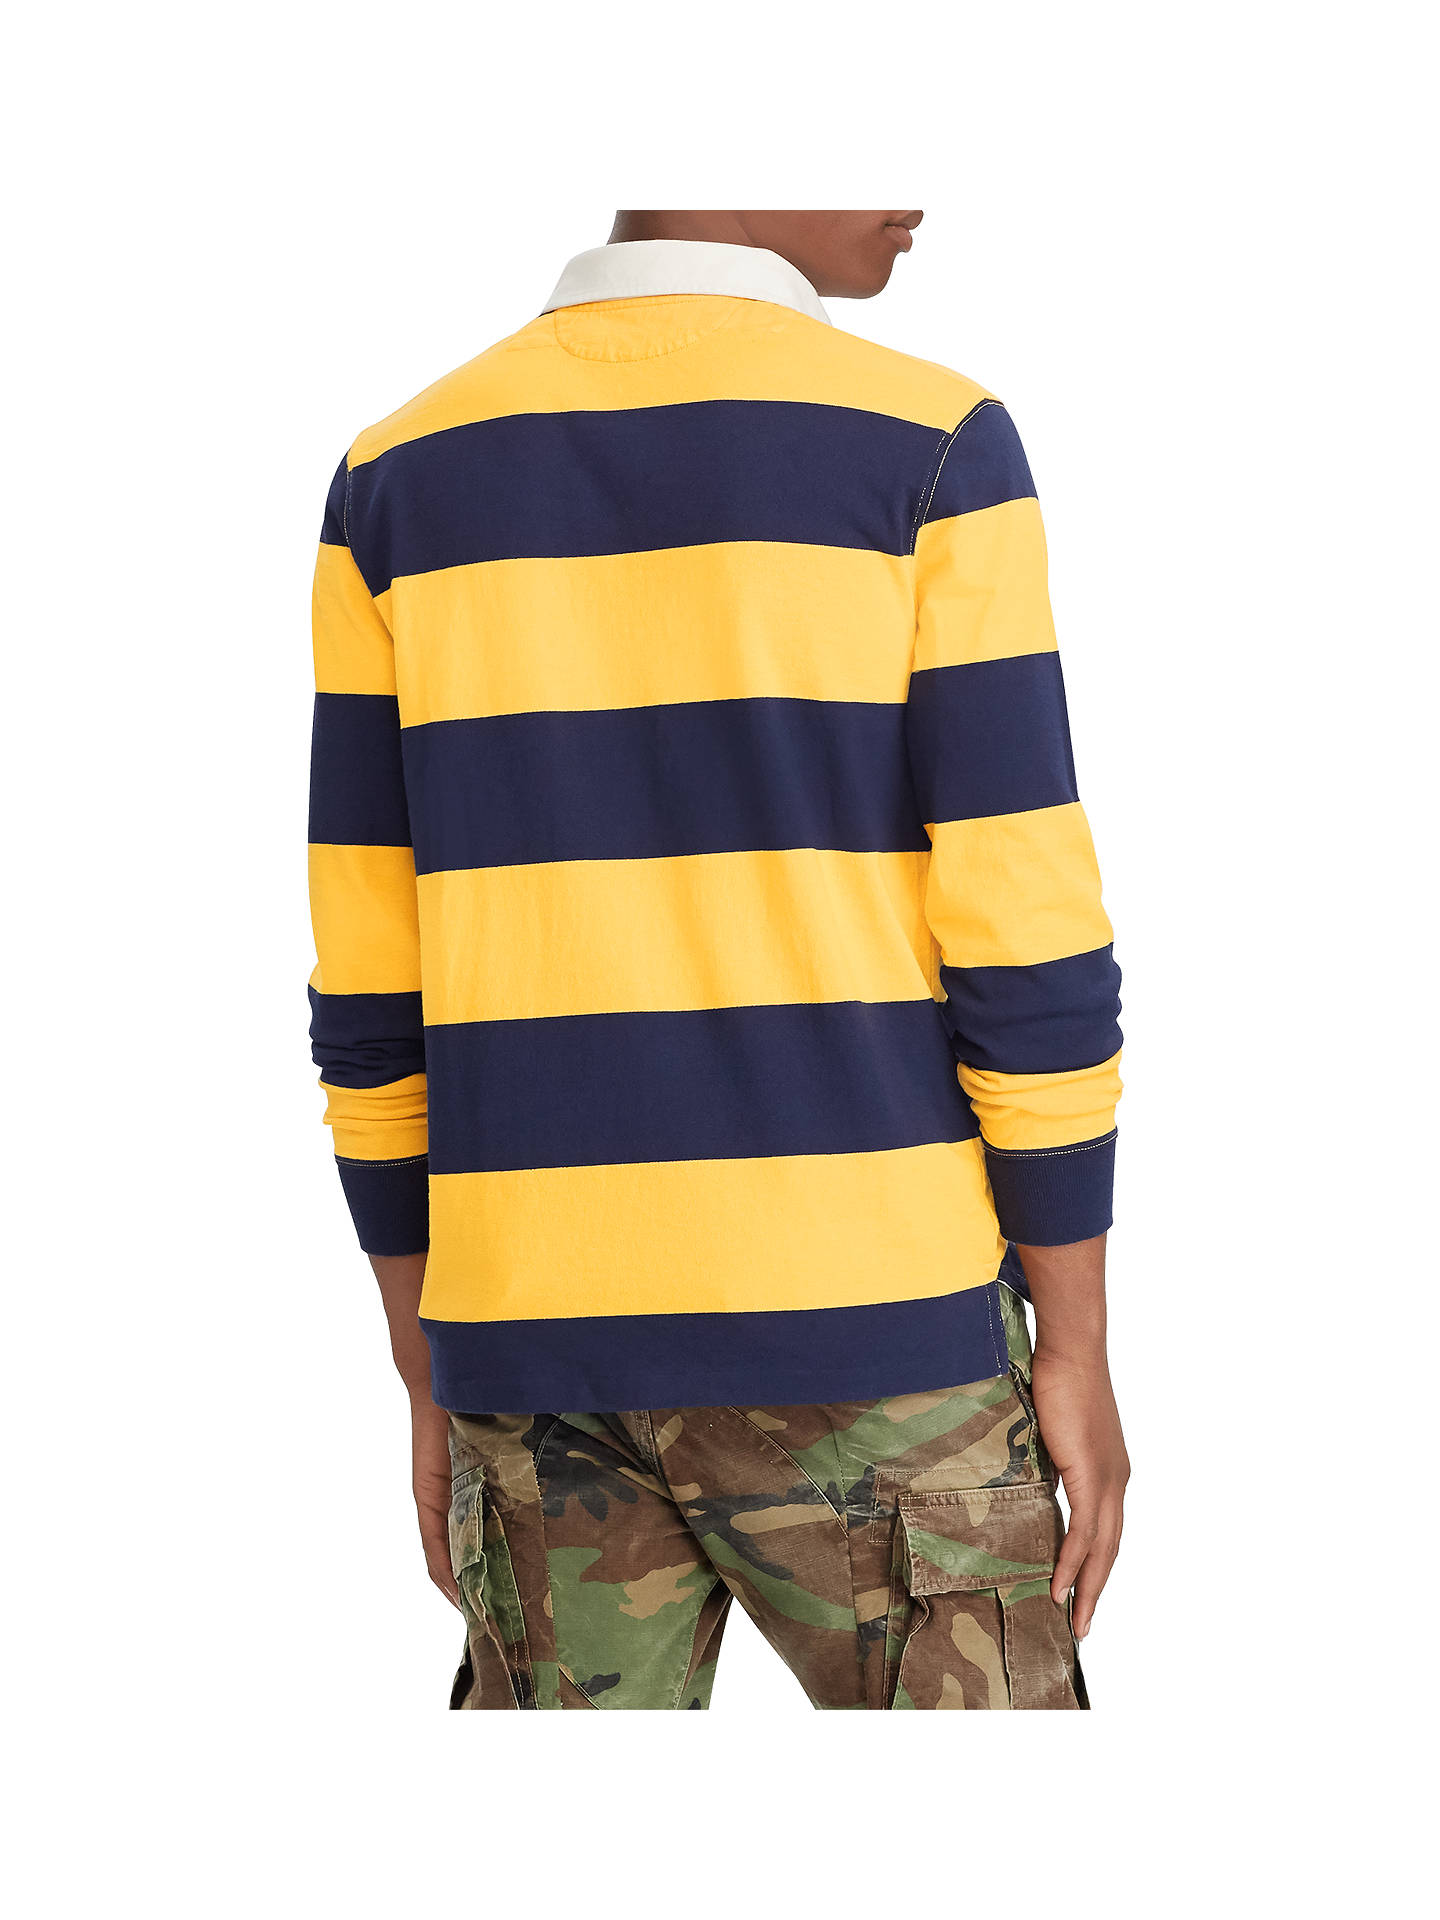 c110e8cd984 Polo Ralph Lauren Striped Rugby Jersey Top, Gold Bugle/Navy at John ...